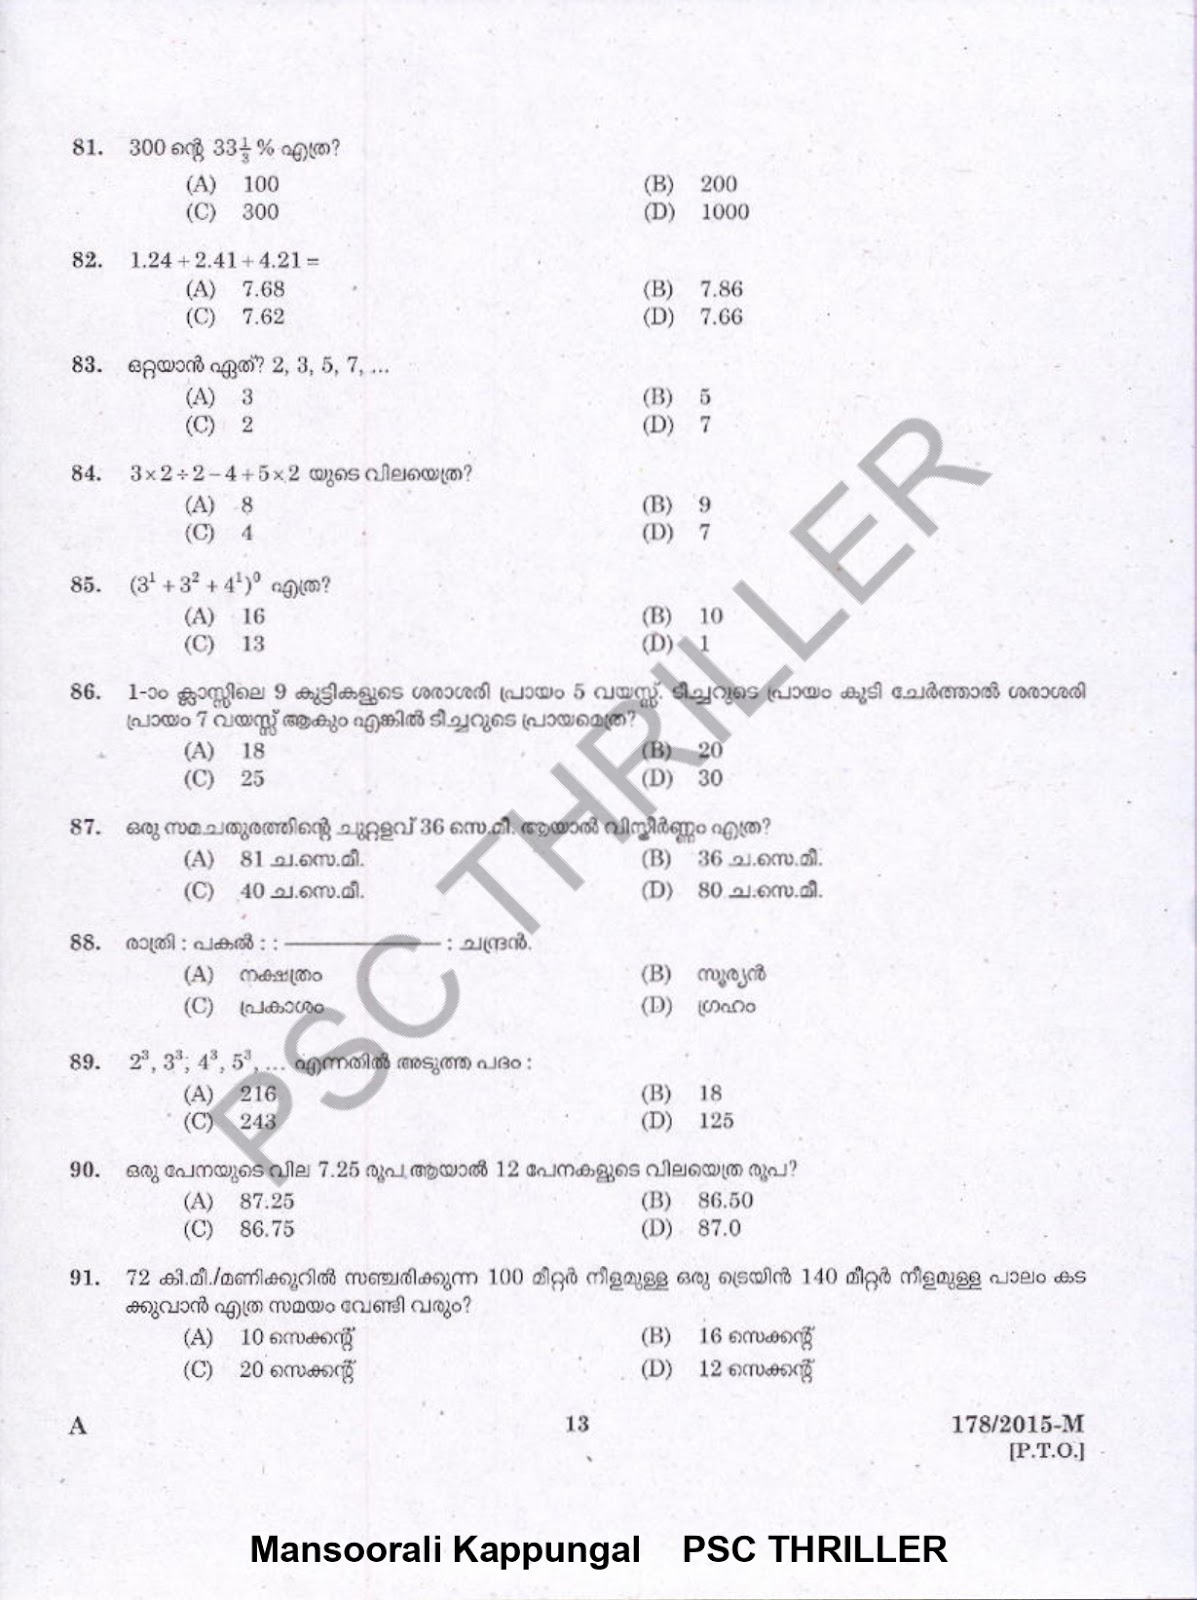 Forest Guard / Male Warder -Question Paper 178/2015 - Kerala PSC